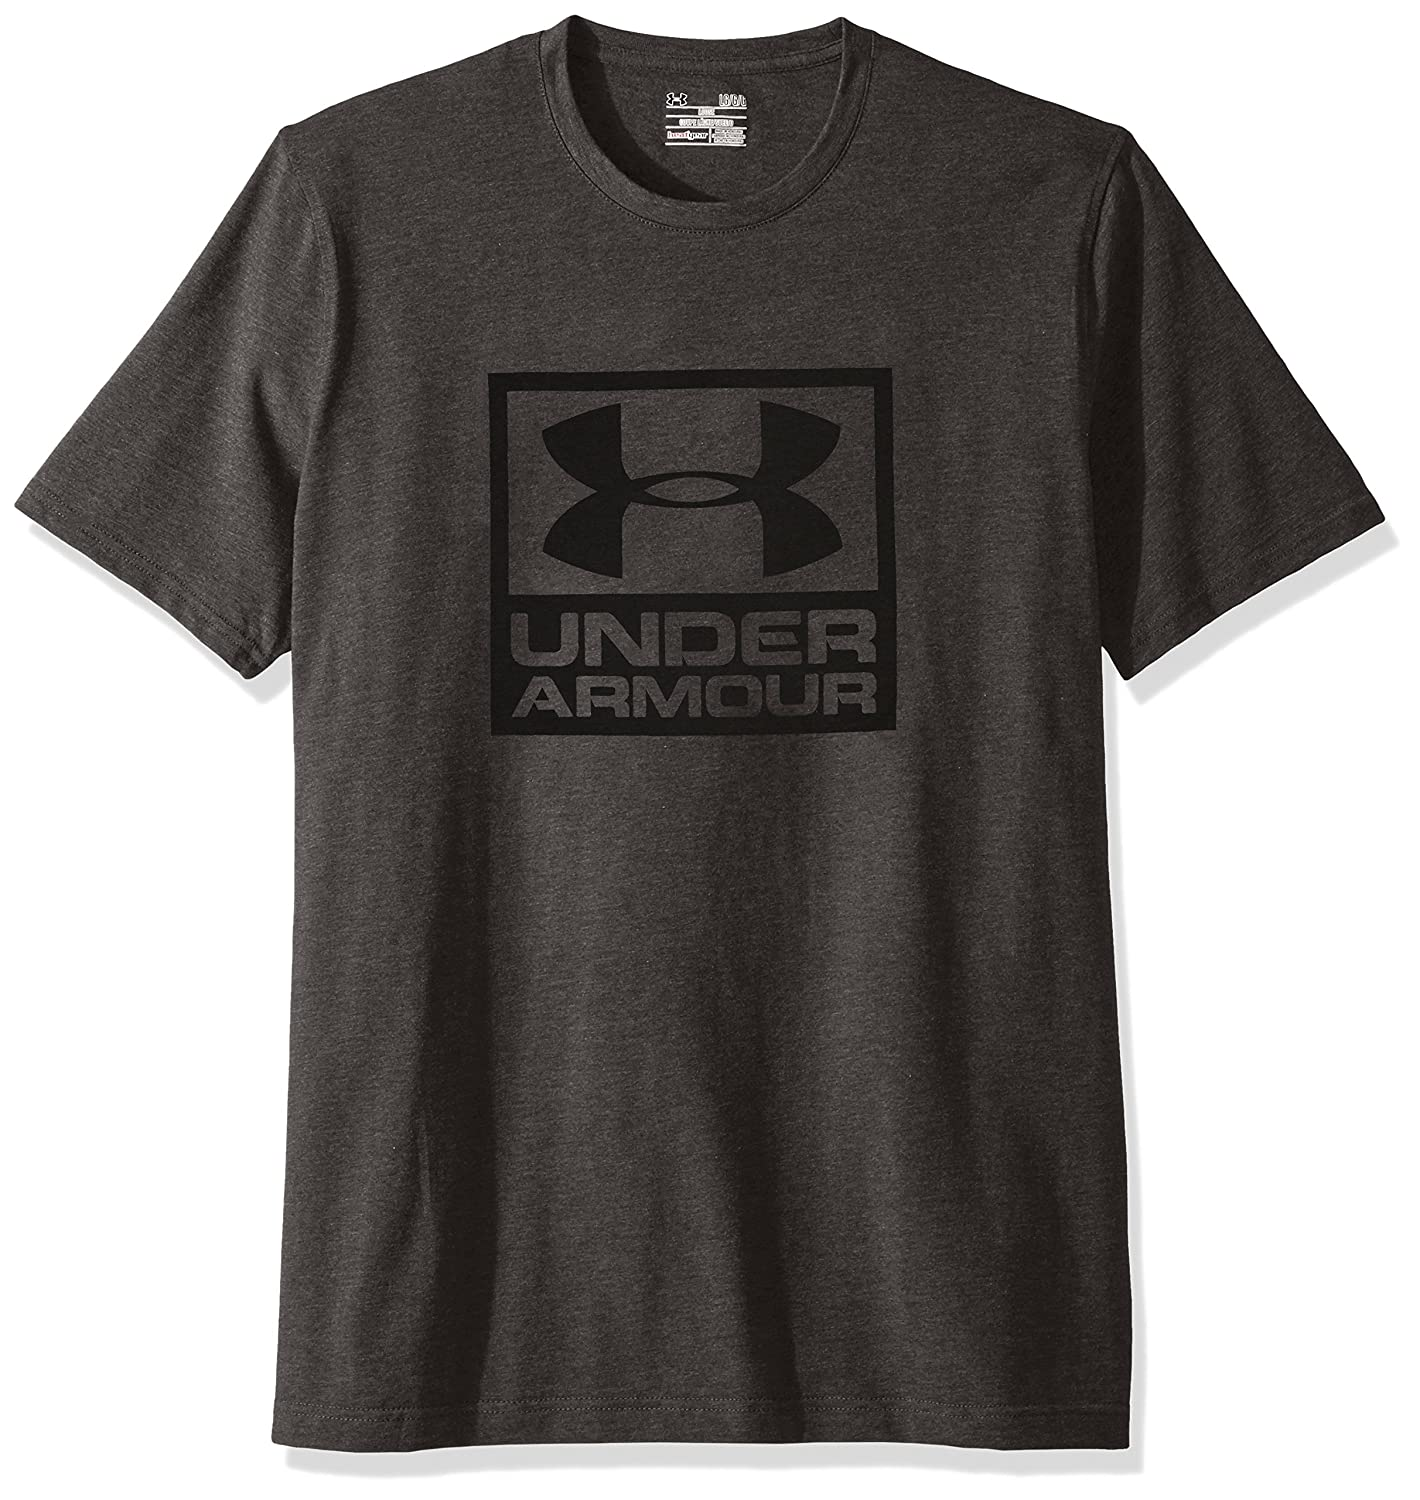 Under Armour Men's Box Short Sleeve Athletic Shirt Under Armour Apparel 1329851